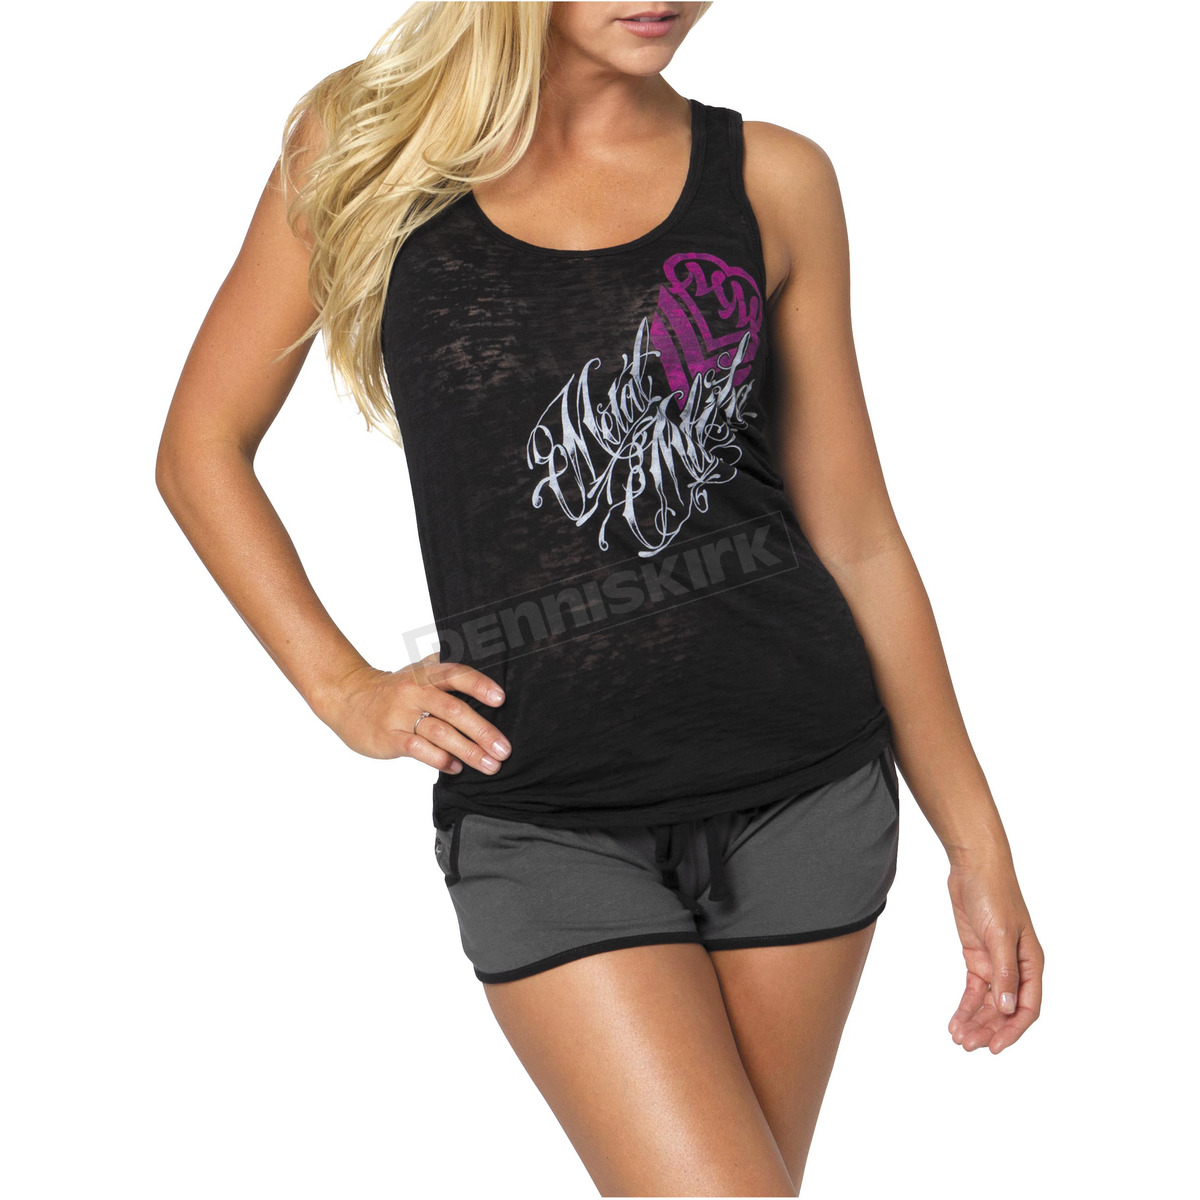 Women products in stock. We hope to have some more soon - so feel free to bookmark this page and check back later. In the meanwhile - check out our great selection of Metal Mulisha, men's clothing, women's clothing and accessories.